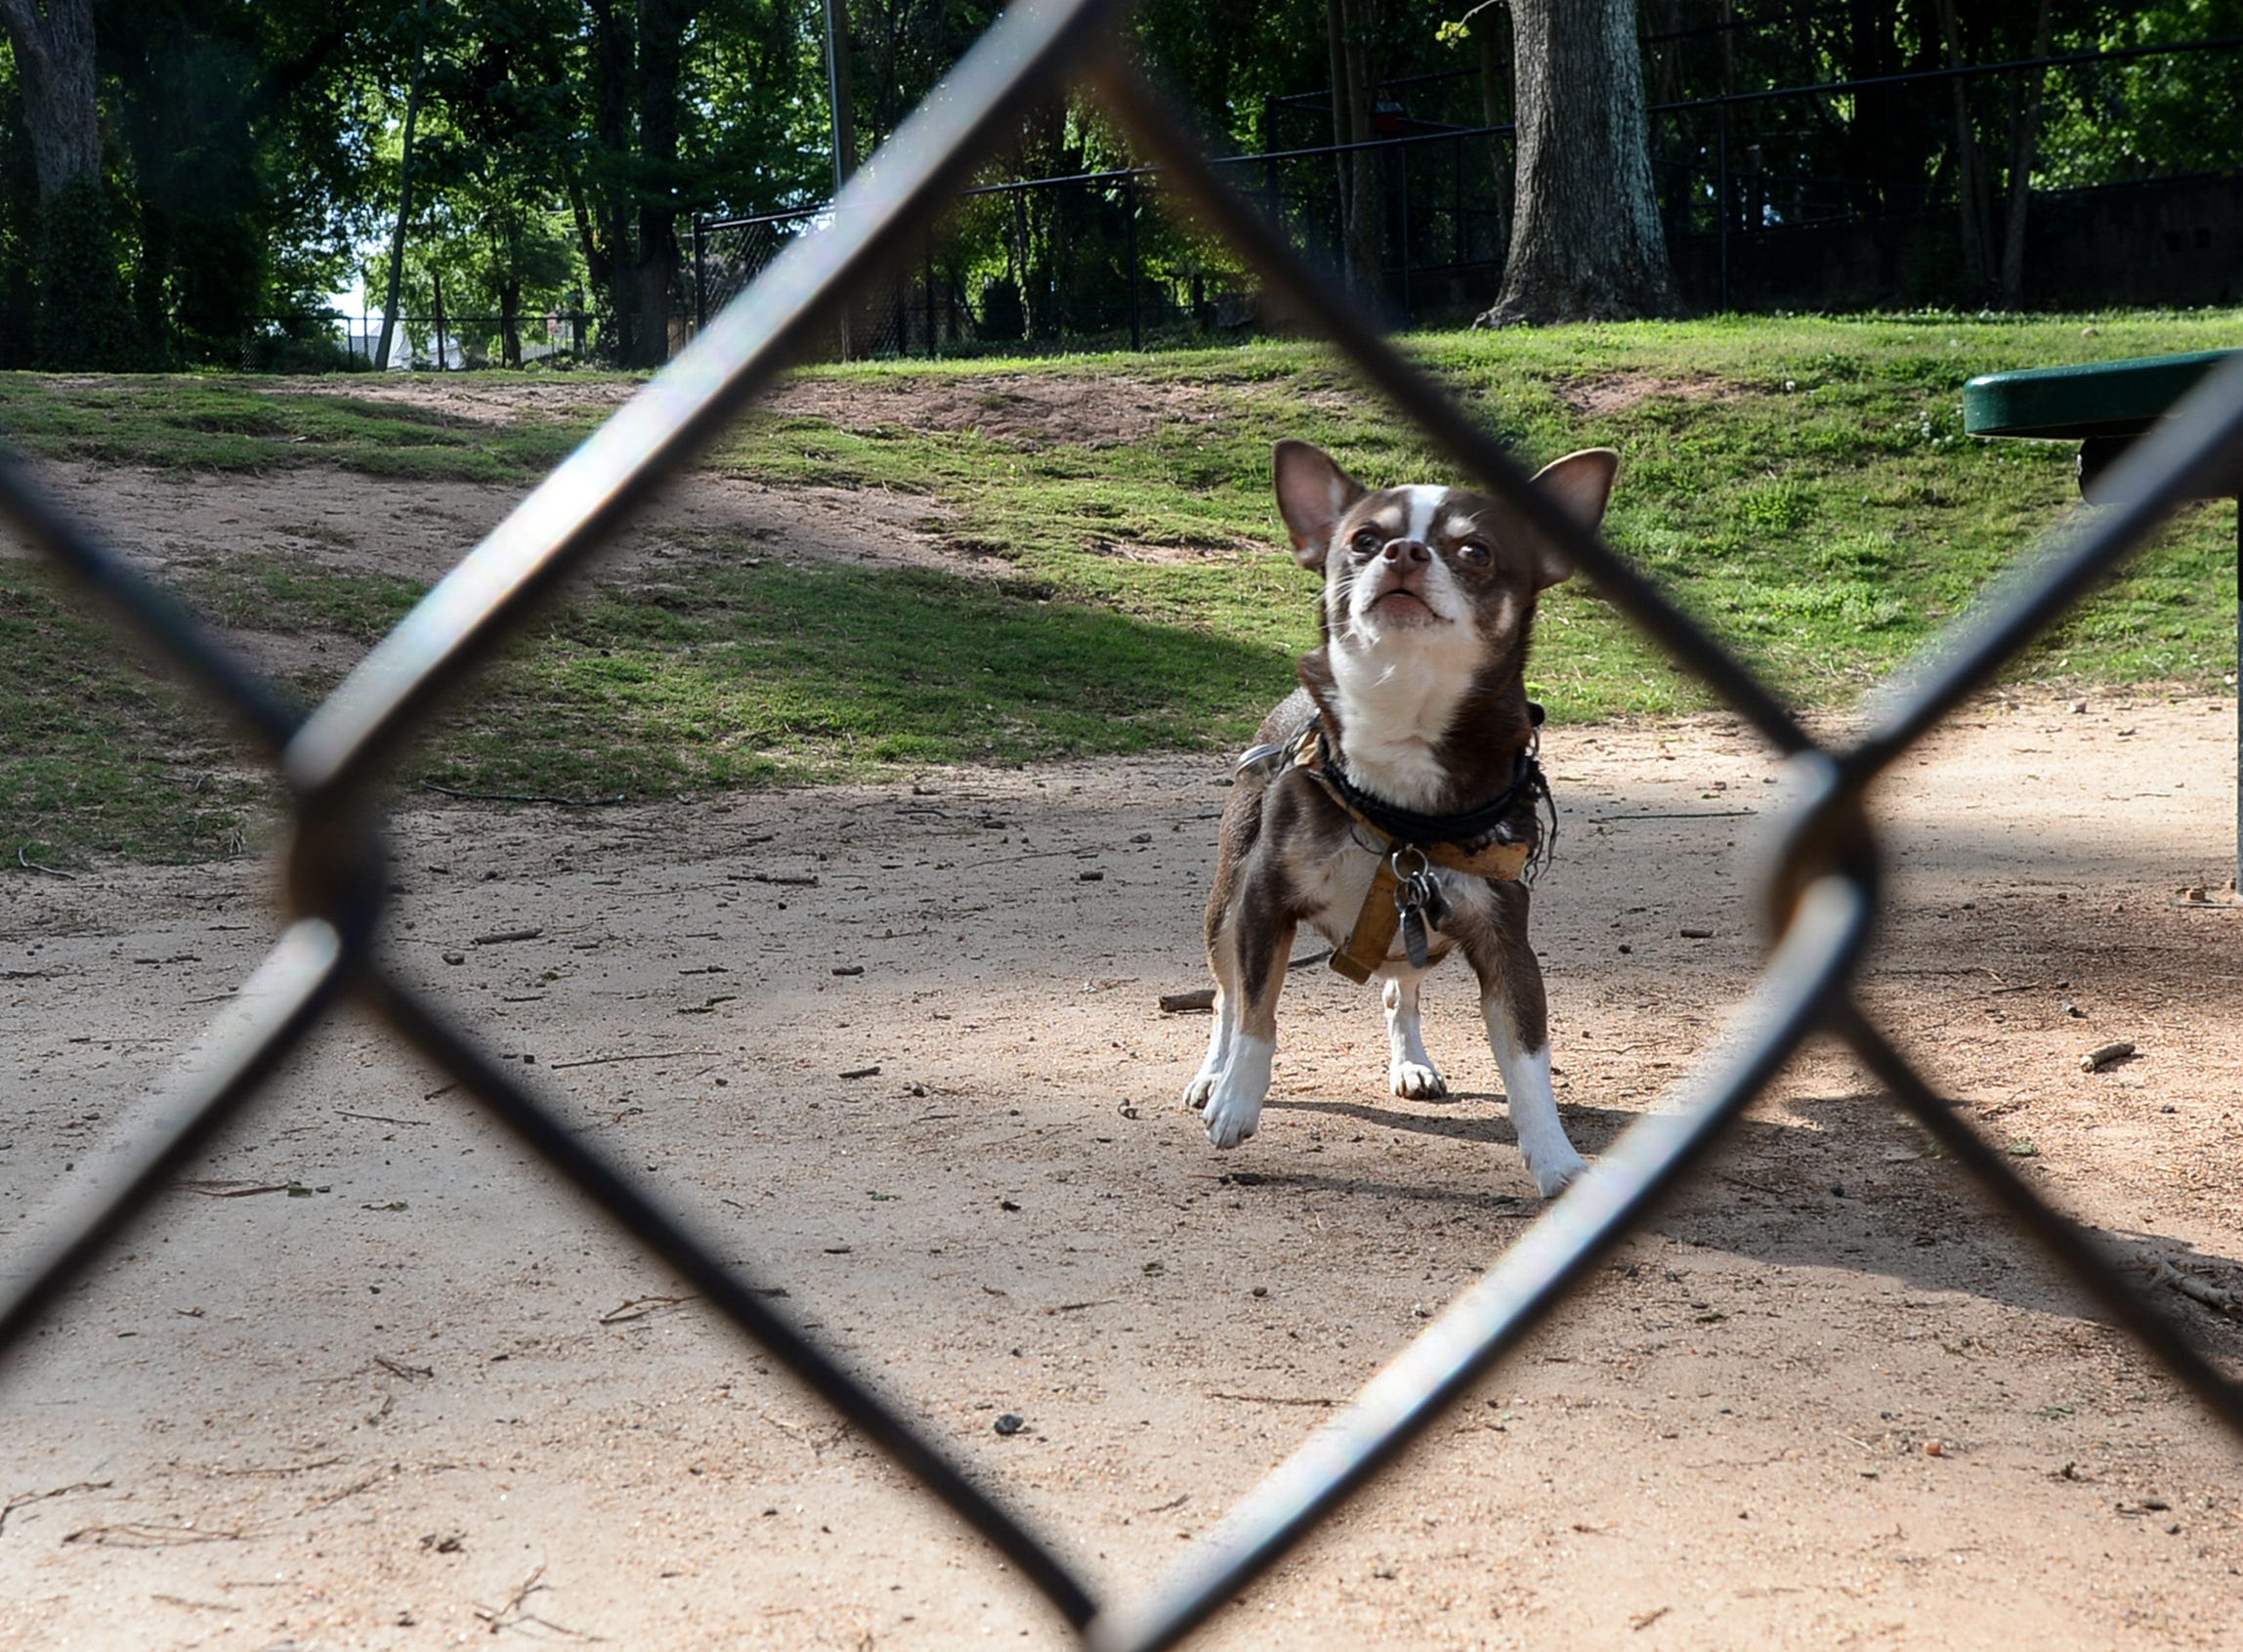 """Chihuahua """"Hershey Kisses"""" plays at The Dog Park in downtown Anderson Tuesday. The Dog Park is the fourth project that To Benefit Anderson group has completed since the first in 2007. The Foothills Community Foundation joined with the group in raising money for the projects."""